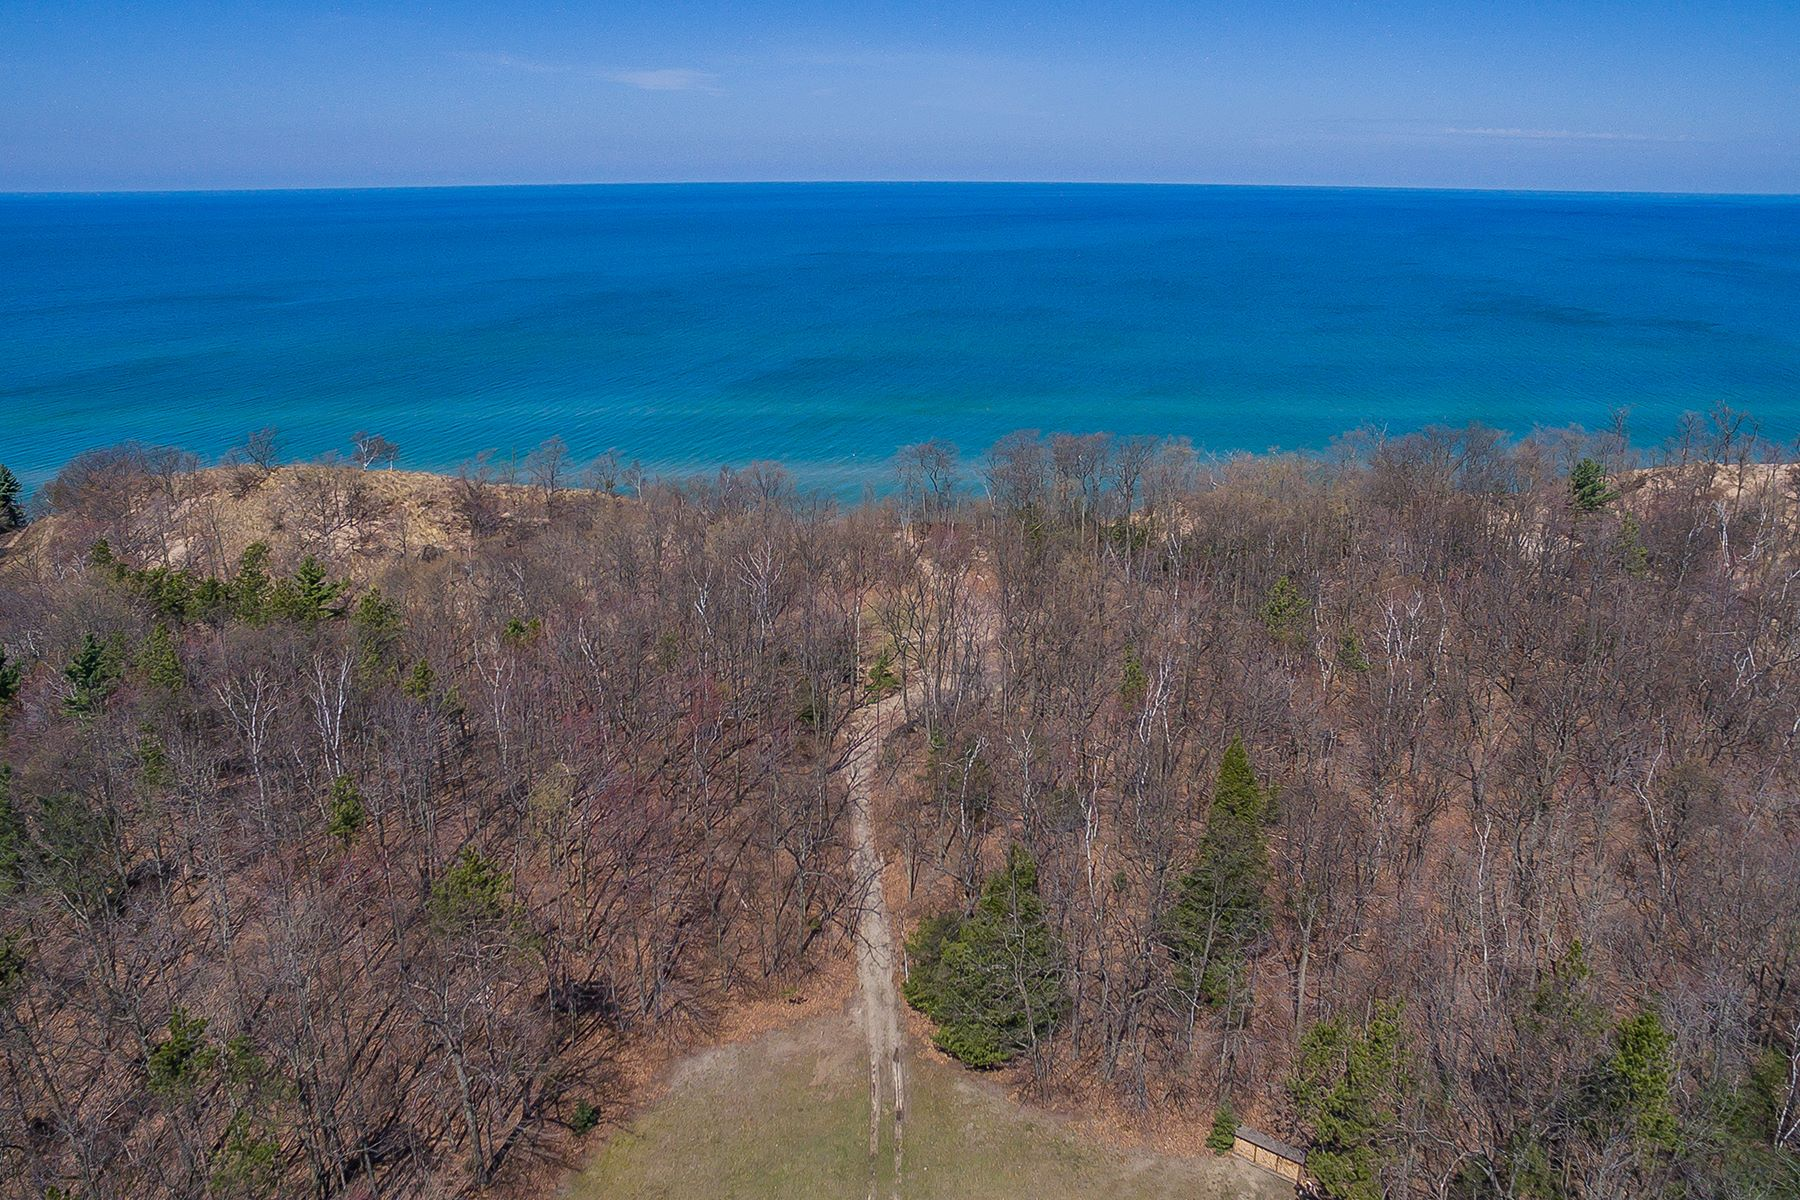 Land for Sale at Serene Lakeshore Property 4500 Lakeshore Road Lot 7 Manistee, Michigan 49660 United States